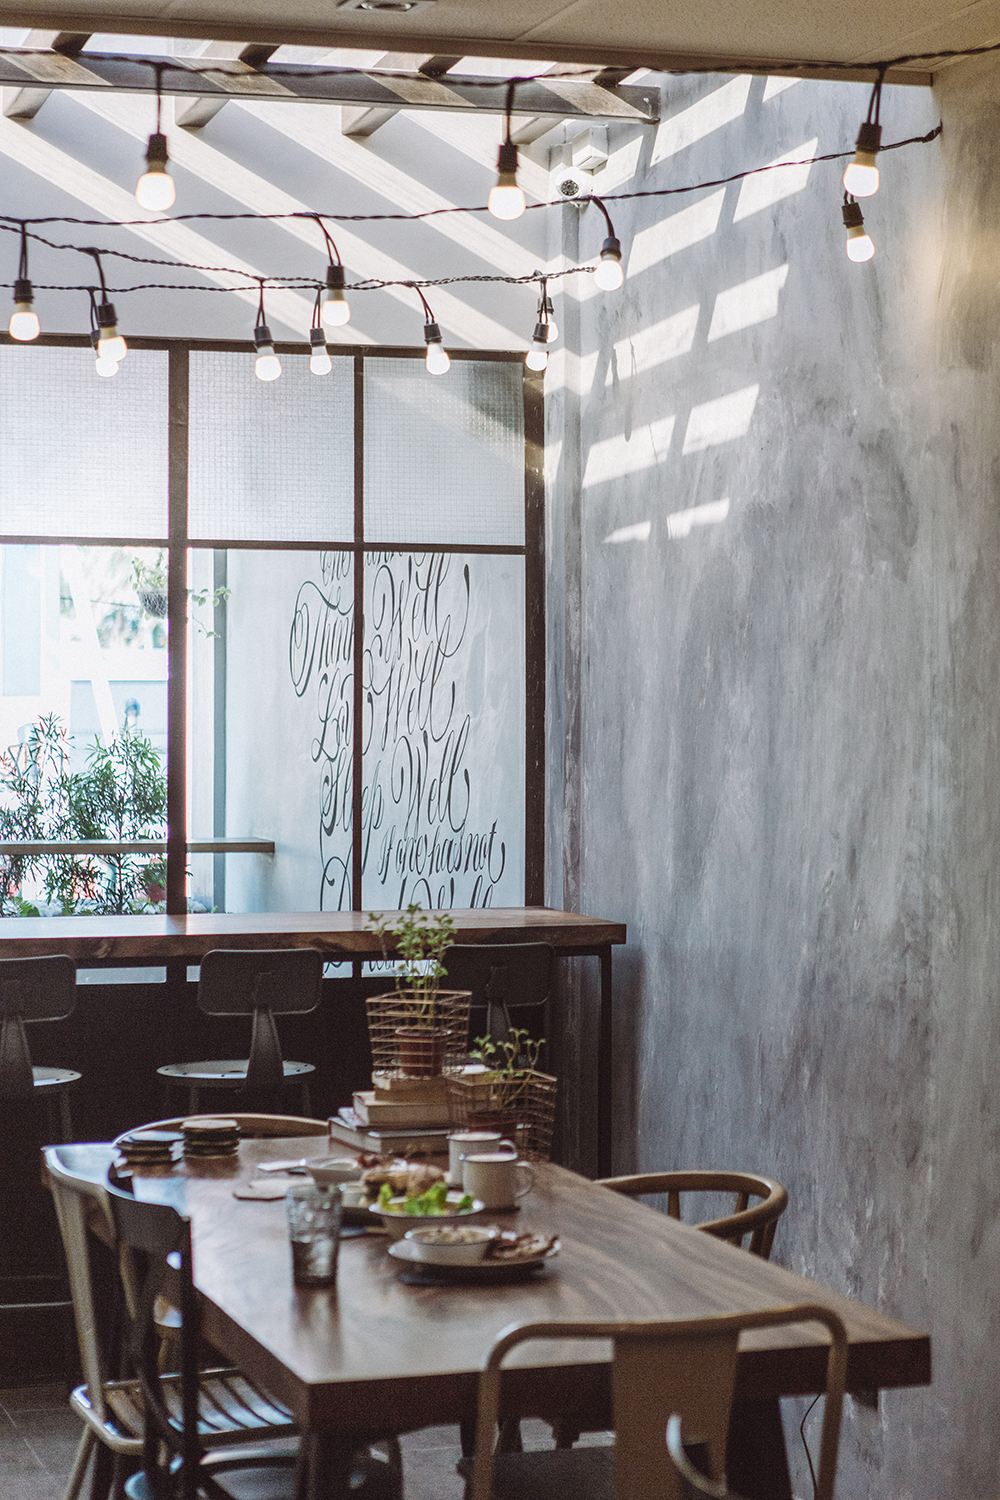 Industrial interiors of Spoon Eat + Drink, softened by the elevated sunroof